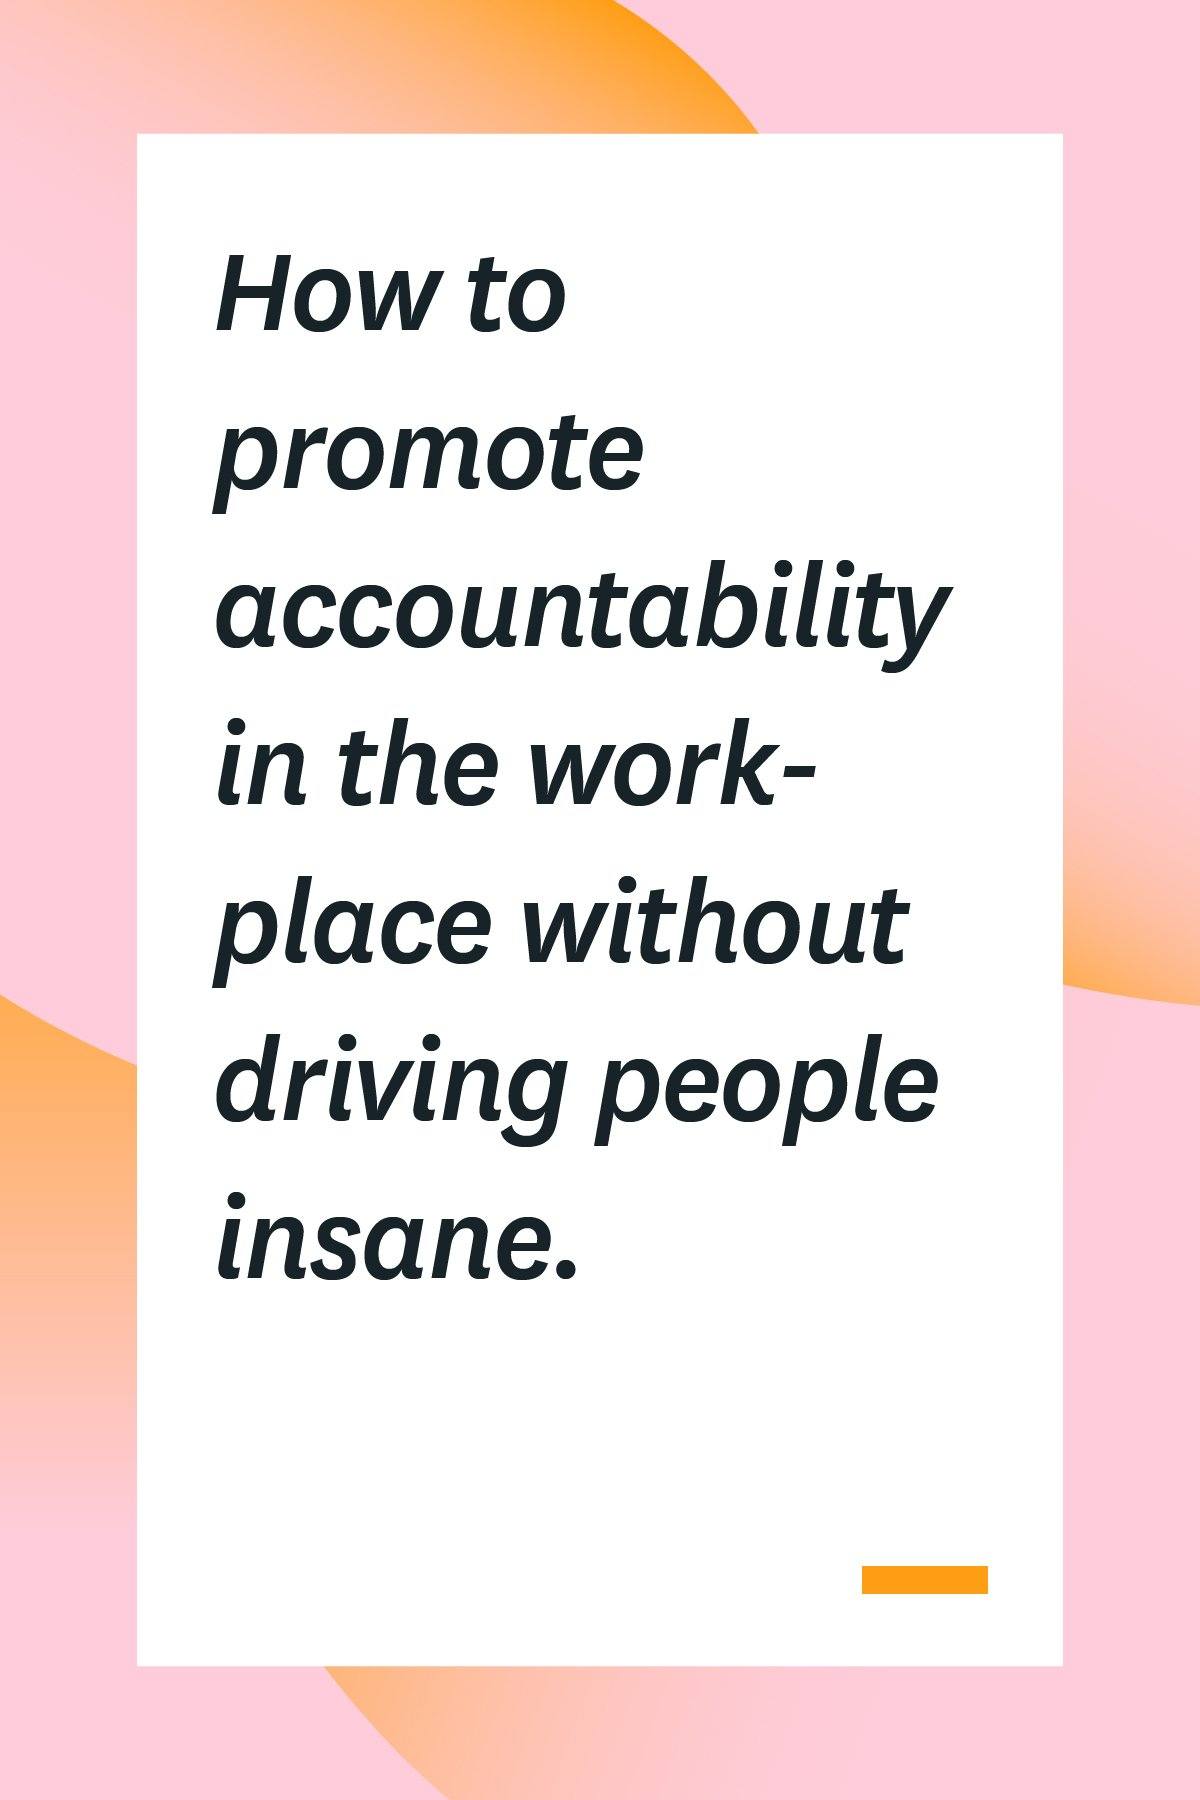 If you want your team to be productive, you need to promote accountability in the workplace. But some accountability strategies are more effective than others. Here are some ways to improve accountability among your employees without micromanaging or driving them insane.